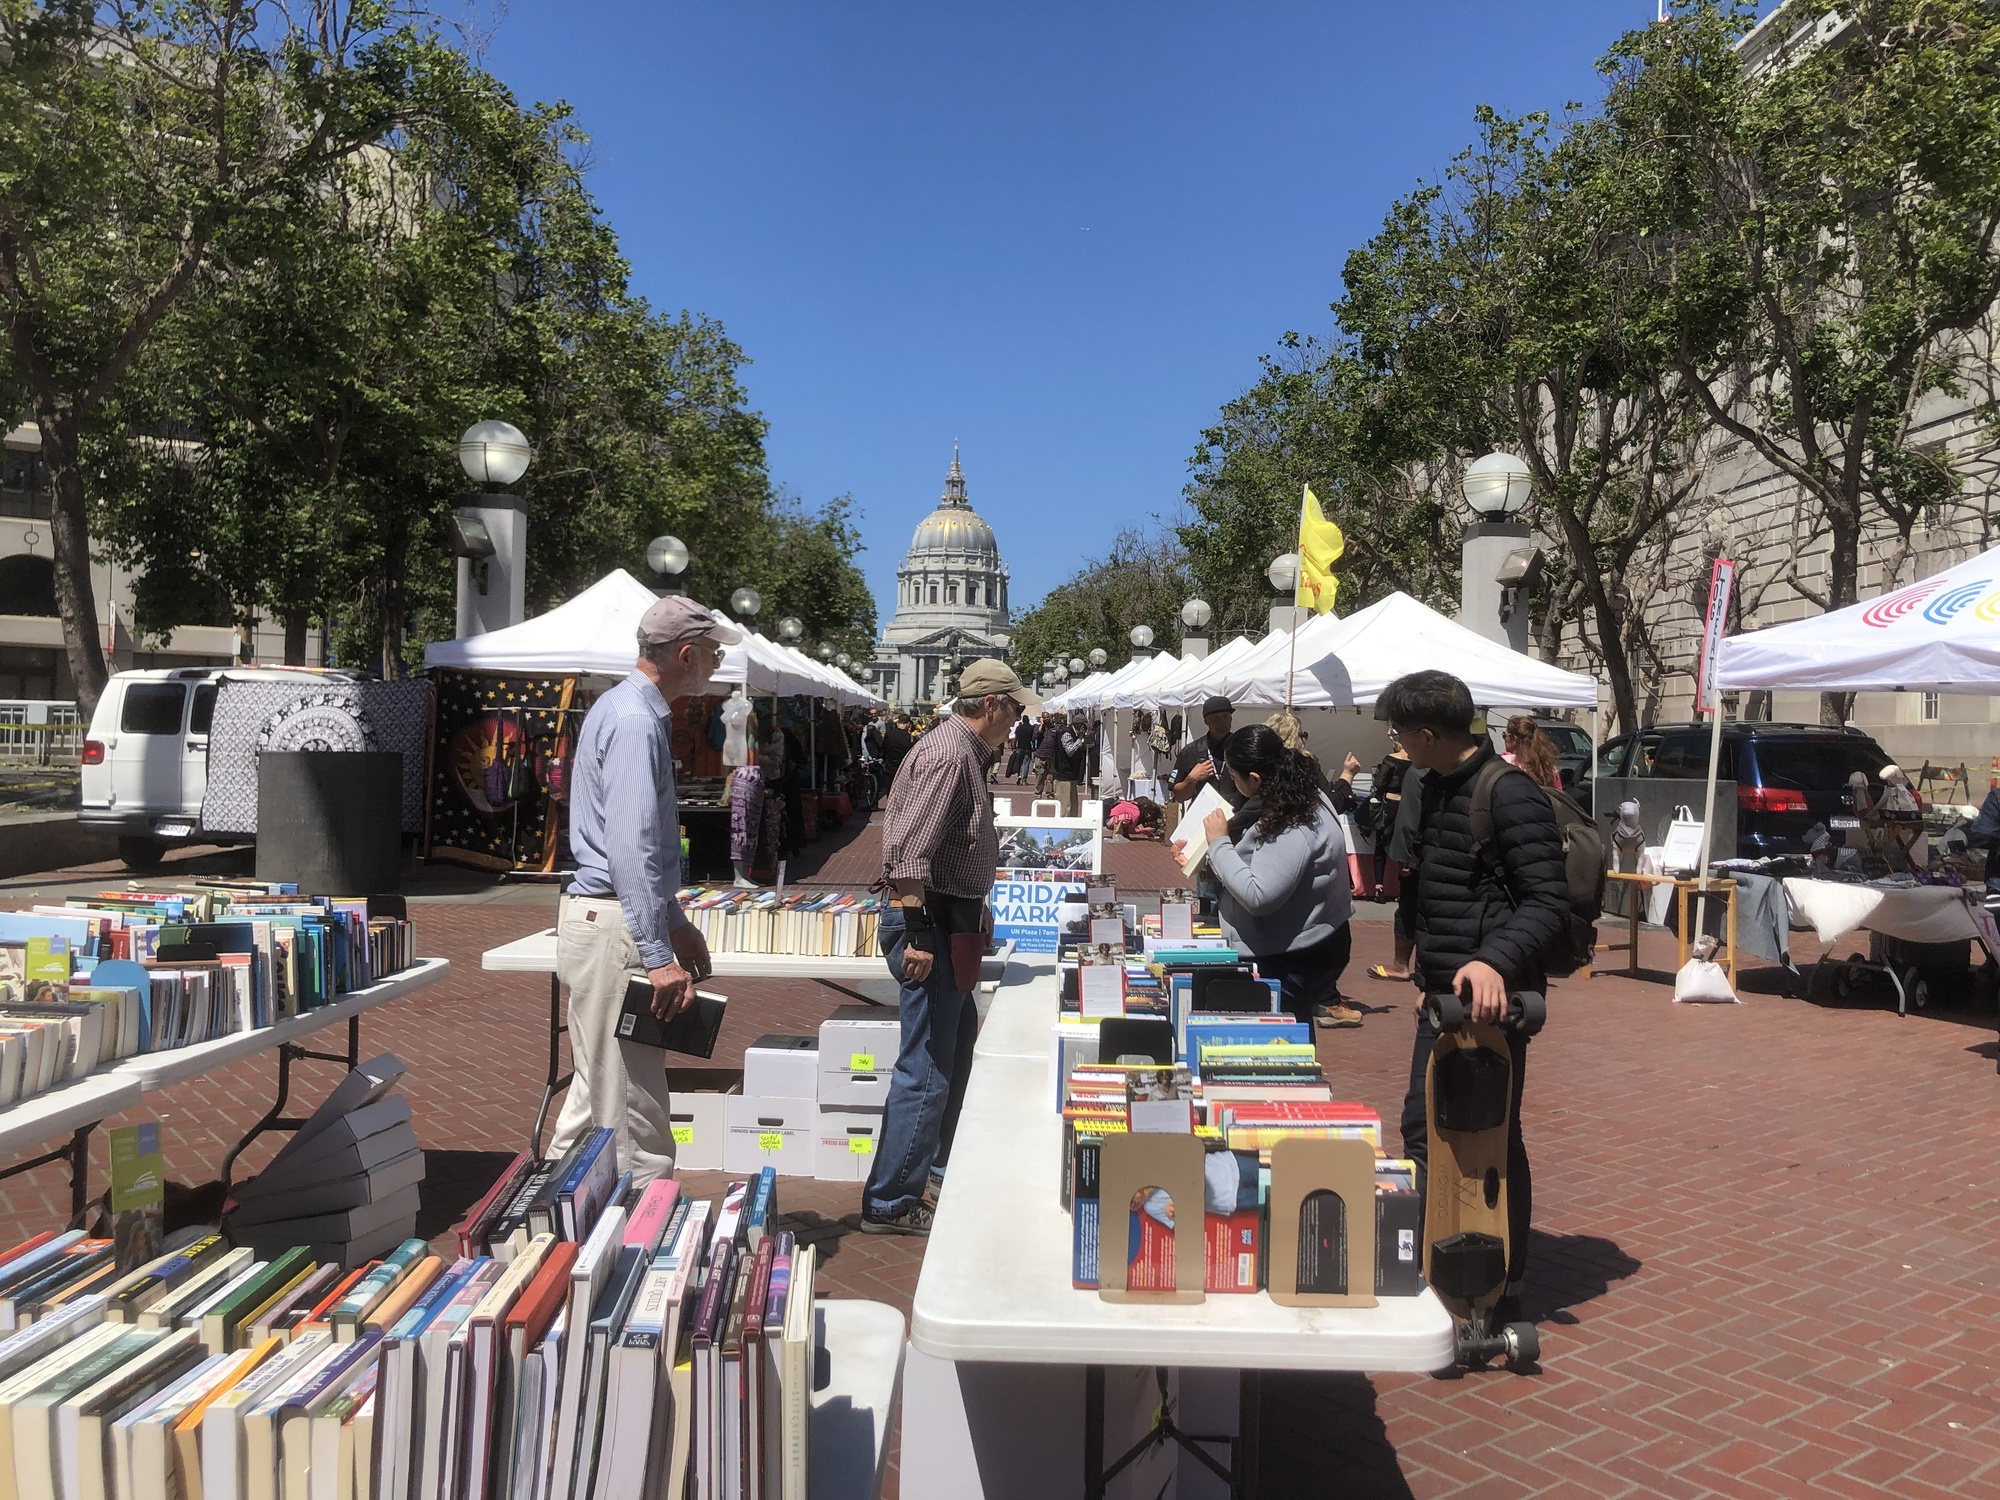 The Friends of the Public Library will sell books the first Friday of the month.